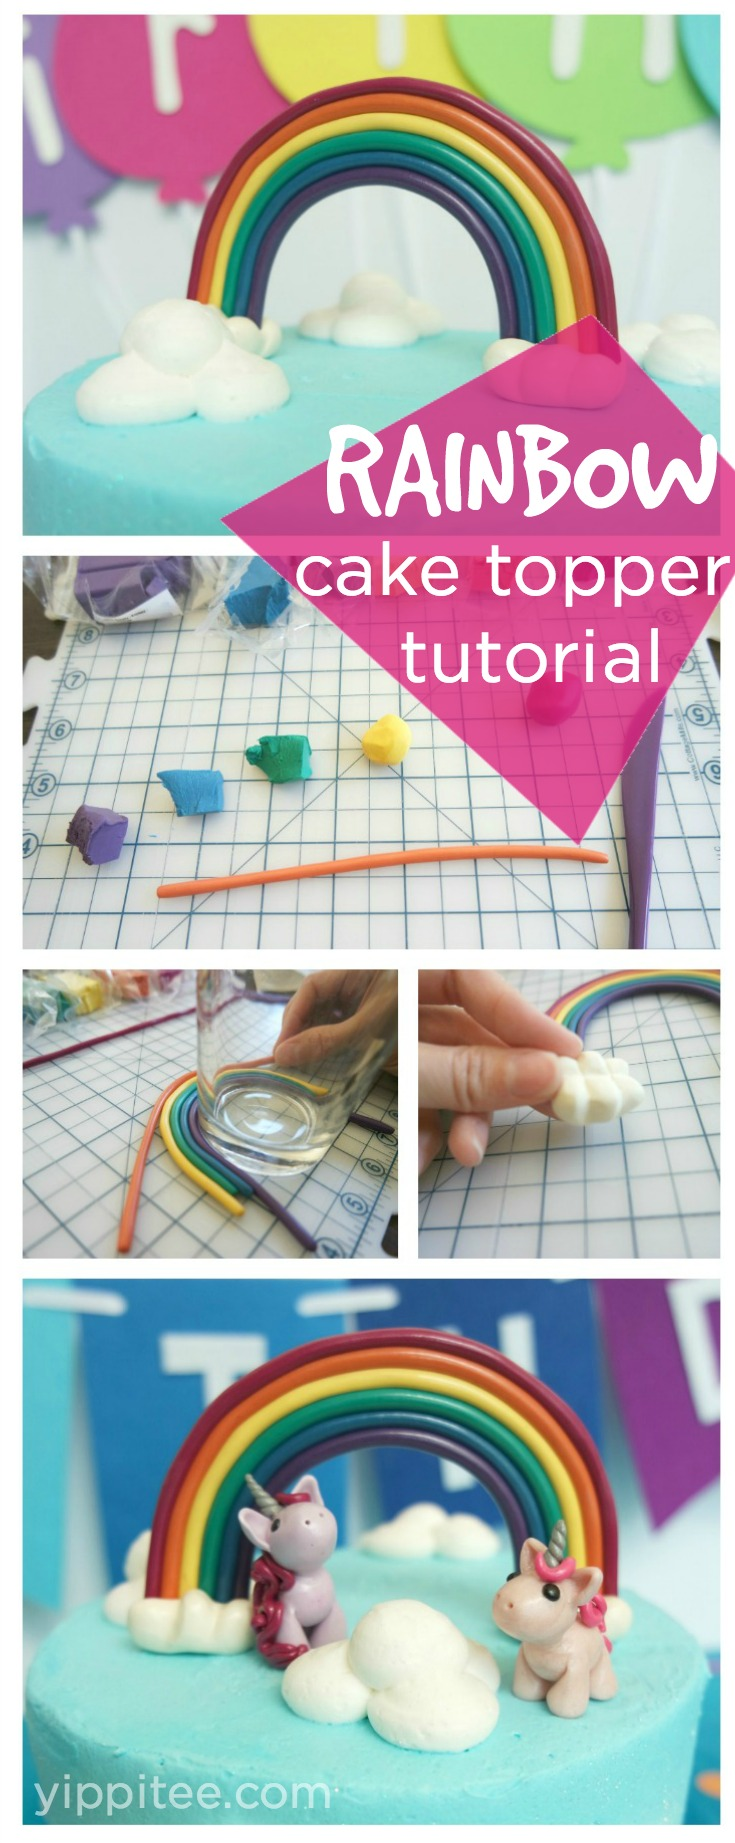 Learn how to make a rainbow cake topper out of polymer clay in this simple, easy-to-follow rainbow cake topper tutorial. #rainbowparty #rainbowbirthday #unicornbirthday #unicornparty #unicorncake #rainbowcake